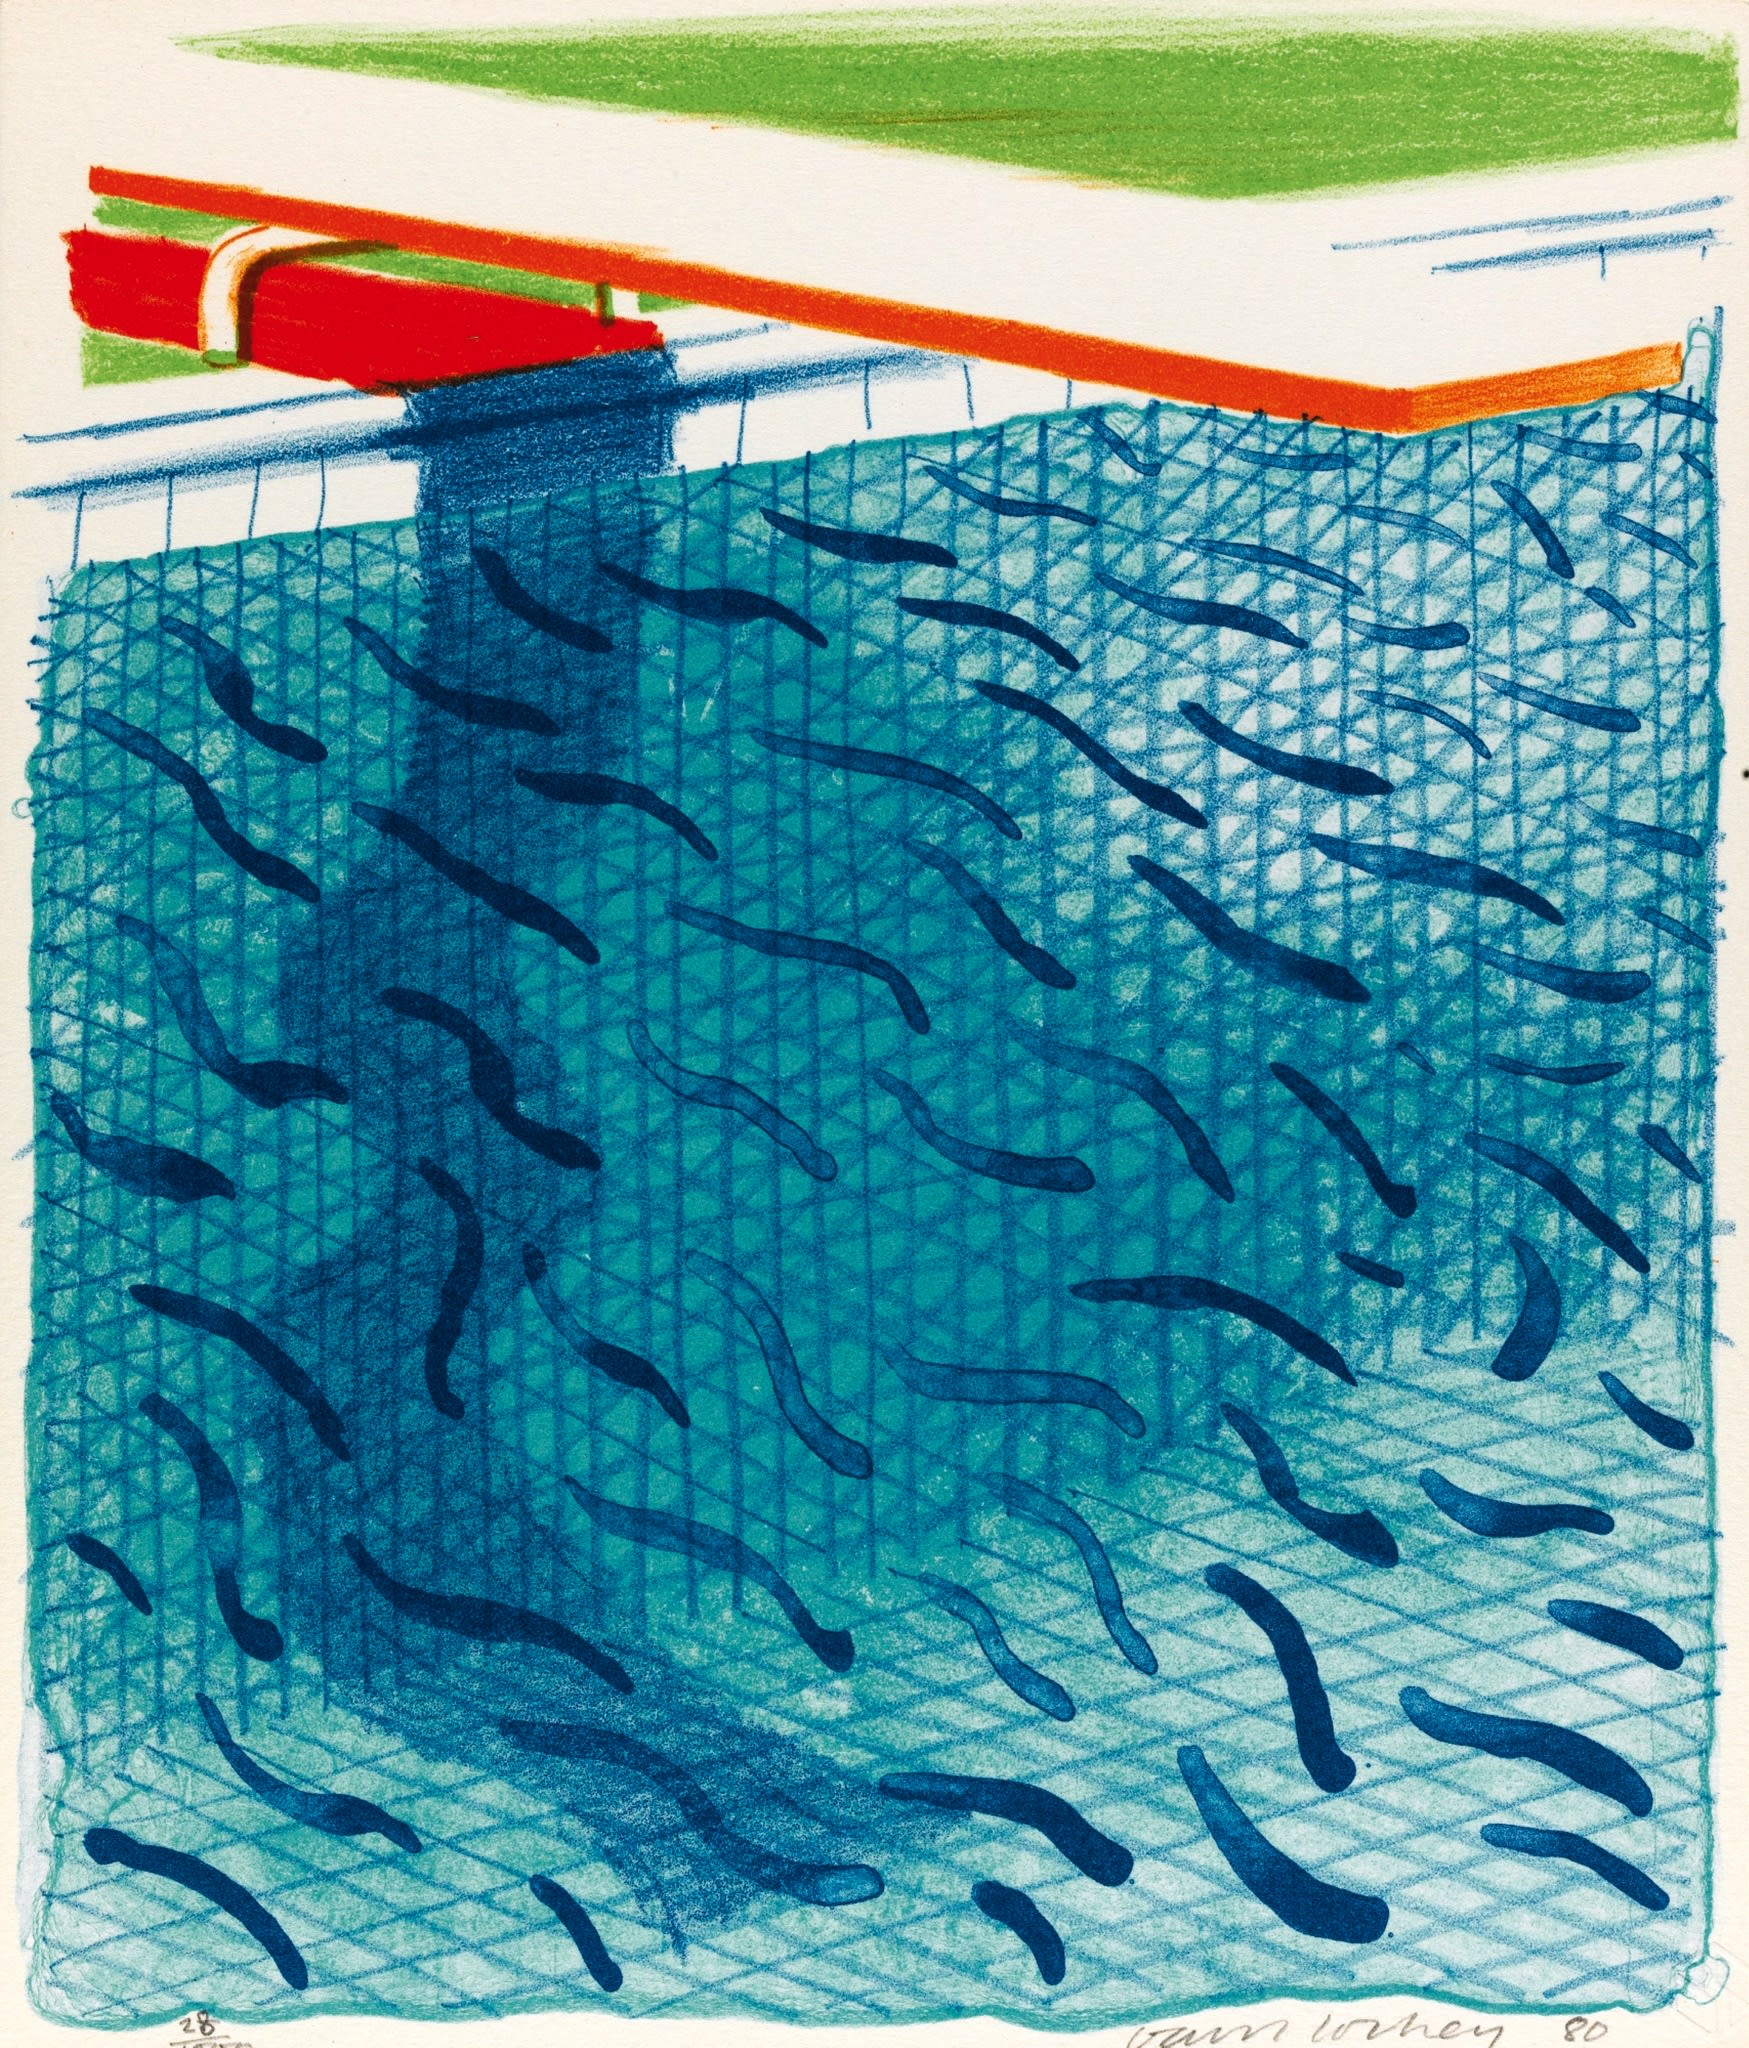 """<span class=""""link fancybox-details-link""""><a href=""""/artists/43-david-hockney/works/147-david-hockney-pool-made-with-paper-and-blue-ink-for-1980/"""">View Detail Page</a></span><div class=""""artist""""><strong>David Hockney</strong></div> 1937 <div class=""""title""""><em>Pool made with paper and blue ink for book</em>, 1980</div> <div class=""""signed_and_dated"""">Signed in pencil lower right and dated</div> <div class=""""medium"""">Lithograph printed in colours</div> <div class=""""dimensions"""">10 1/2 x 9 1/8 in<br />26.7 x 23 cm</div> <div class=""""edition_details"""">from an edition of 1000</div>"""